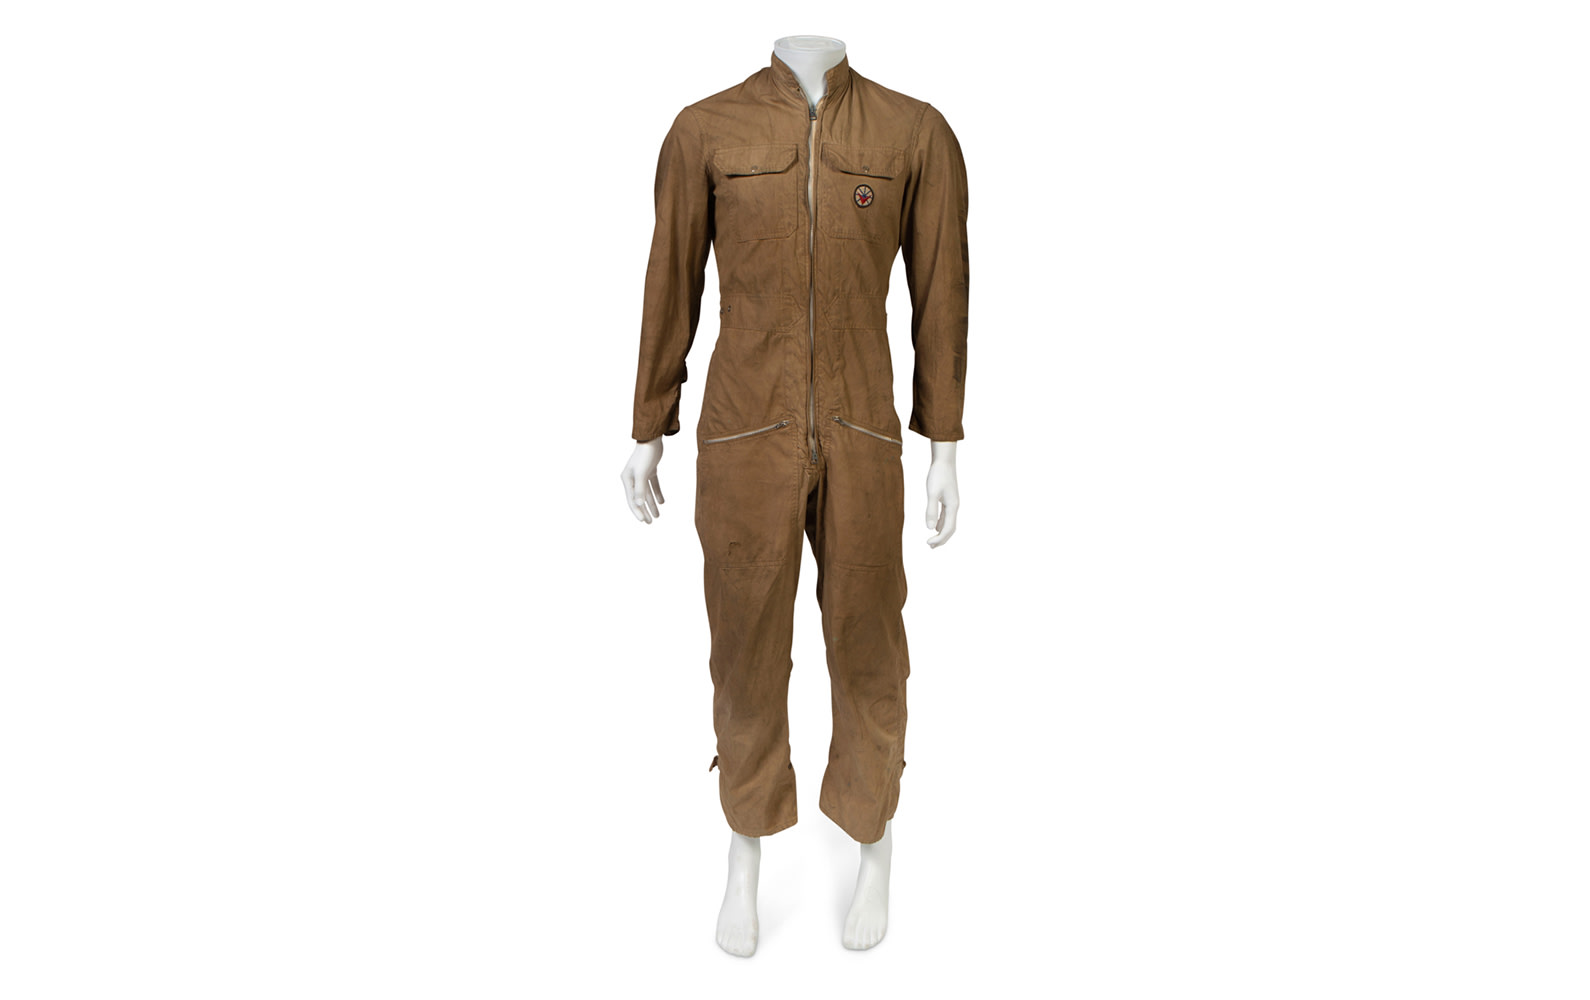 c. 1950s Racing Suit, Worn by Phil Hill at the 1956 Palm Springs Road Races